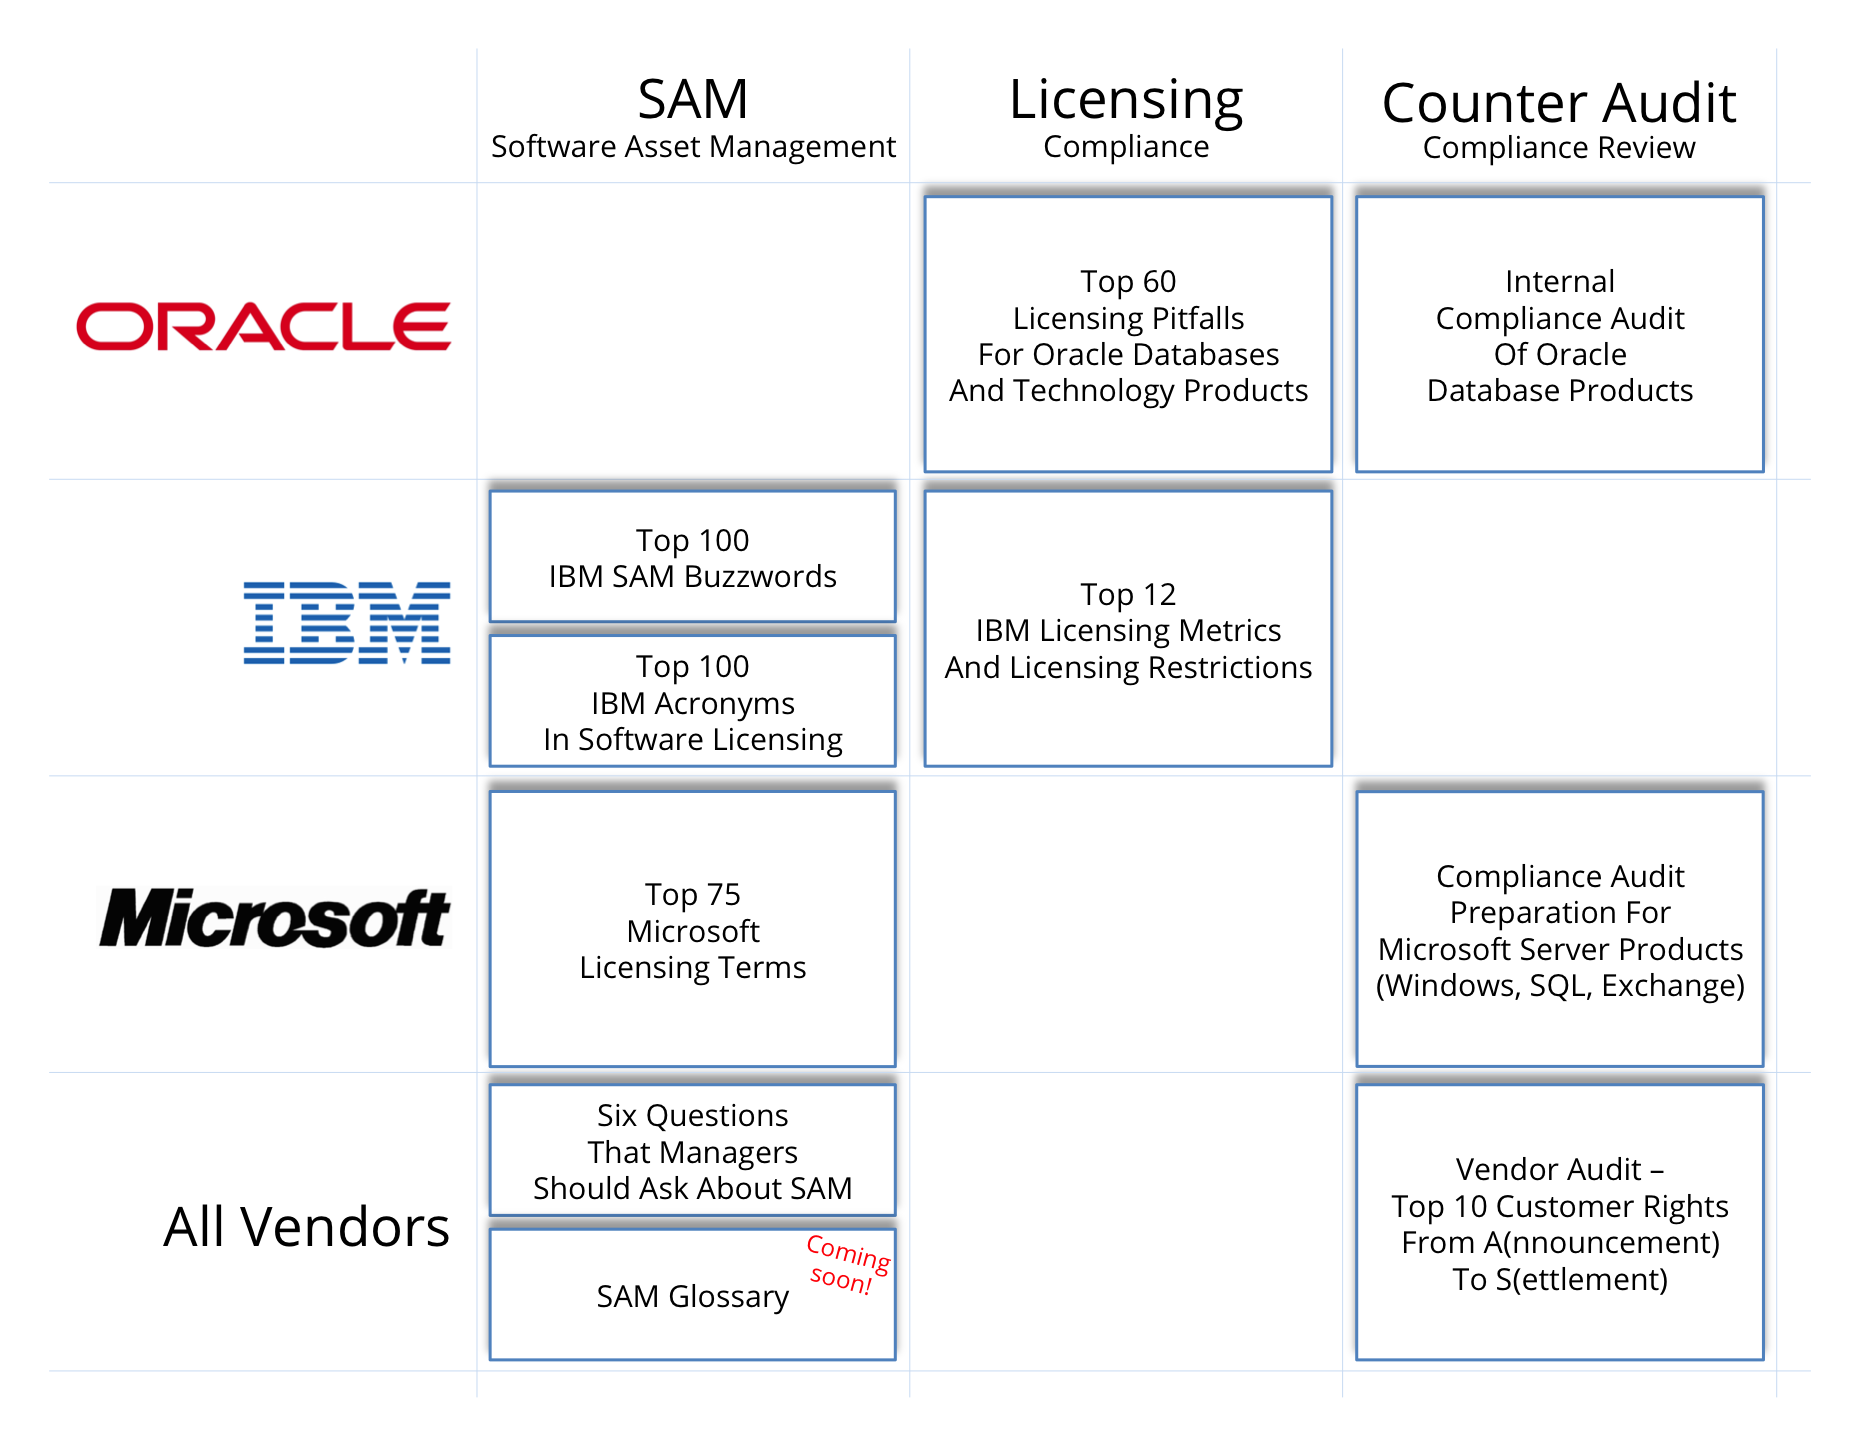 OMTCO - References for Software Asset Management SAM Licensing Counter Audit for Oracle IBM Microsoft And All Vendors